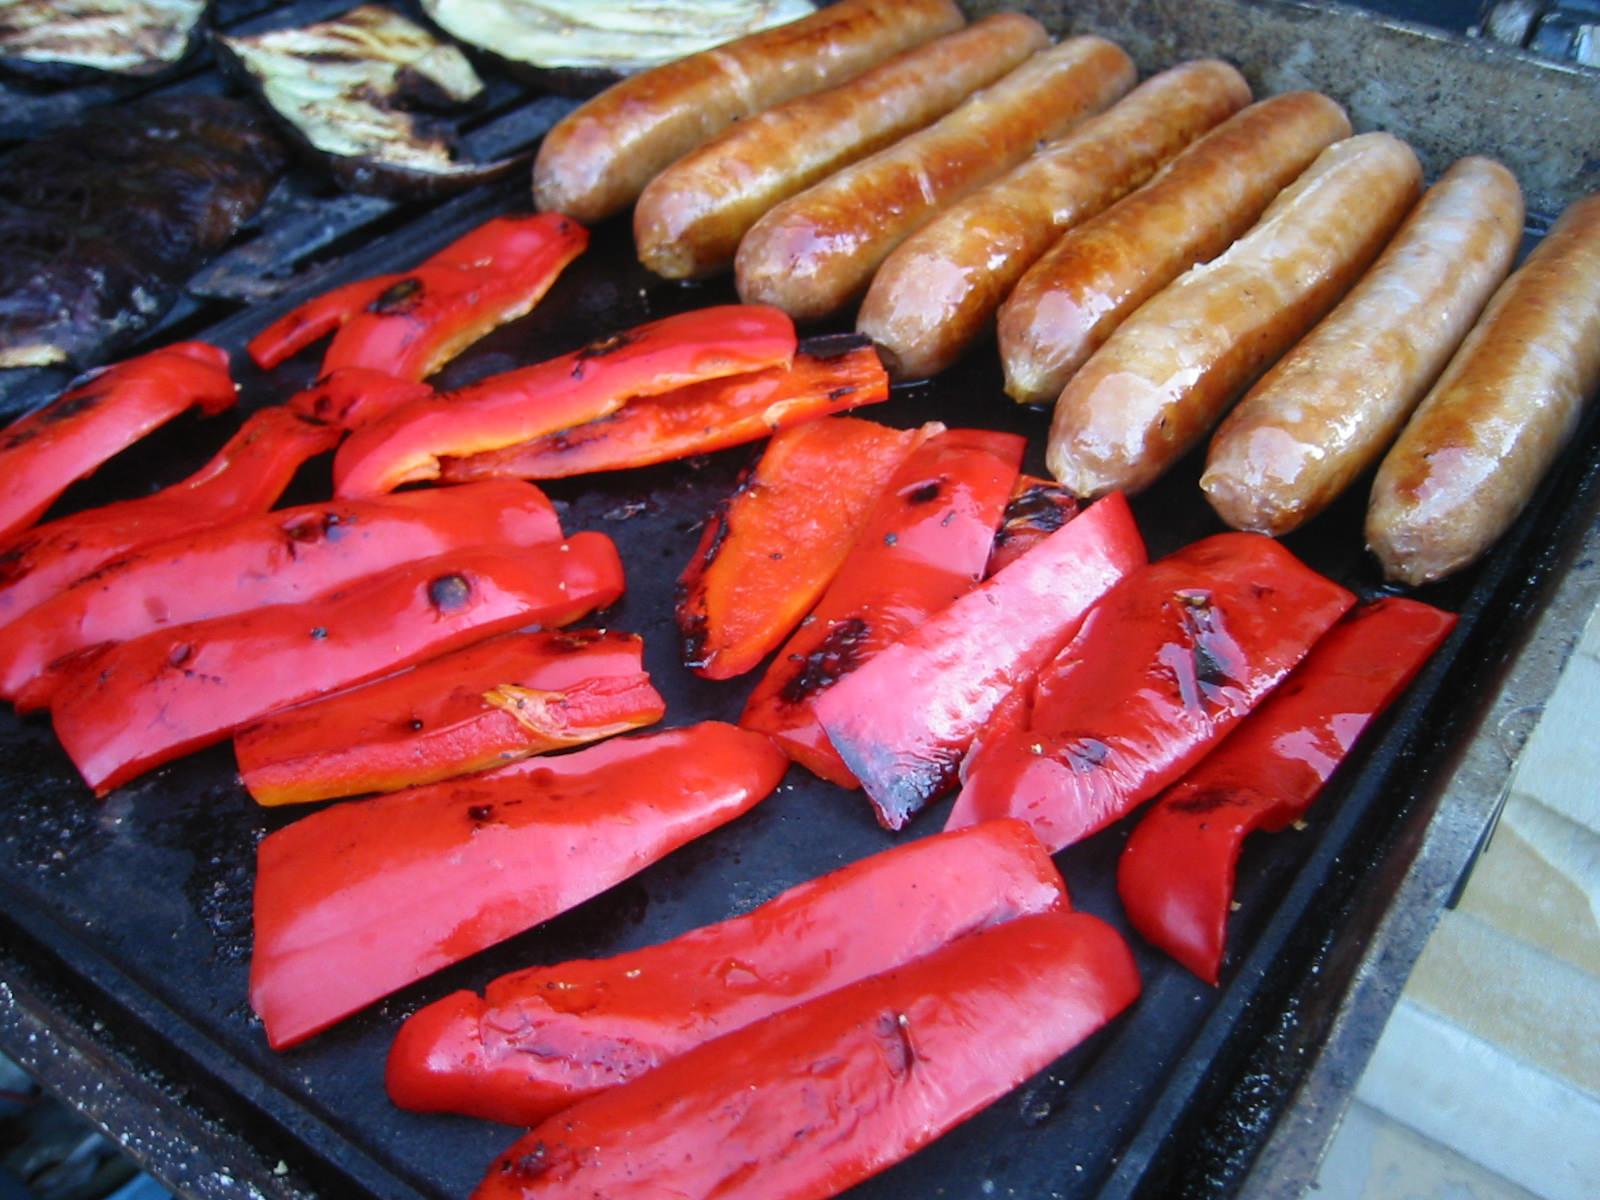 Red capsicum and beef sausages